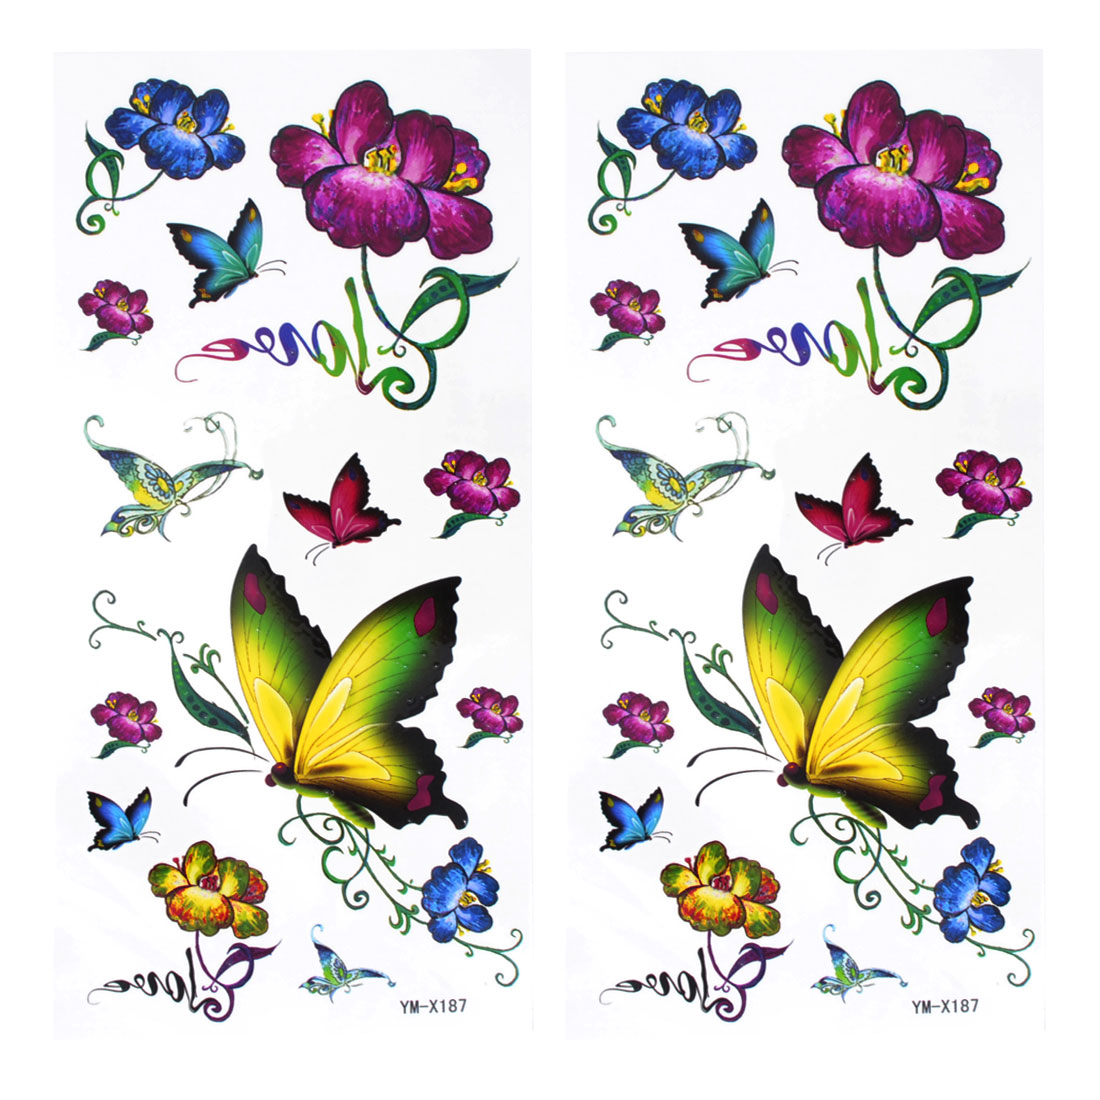 Multicolor Butterfly Floral Printed Temporary Transferable Tattoos Skin Decal Decoration 2 Pcs